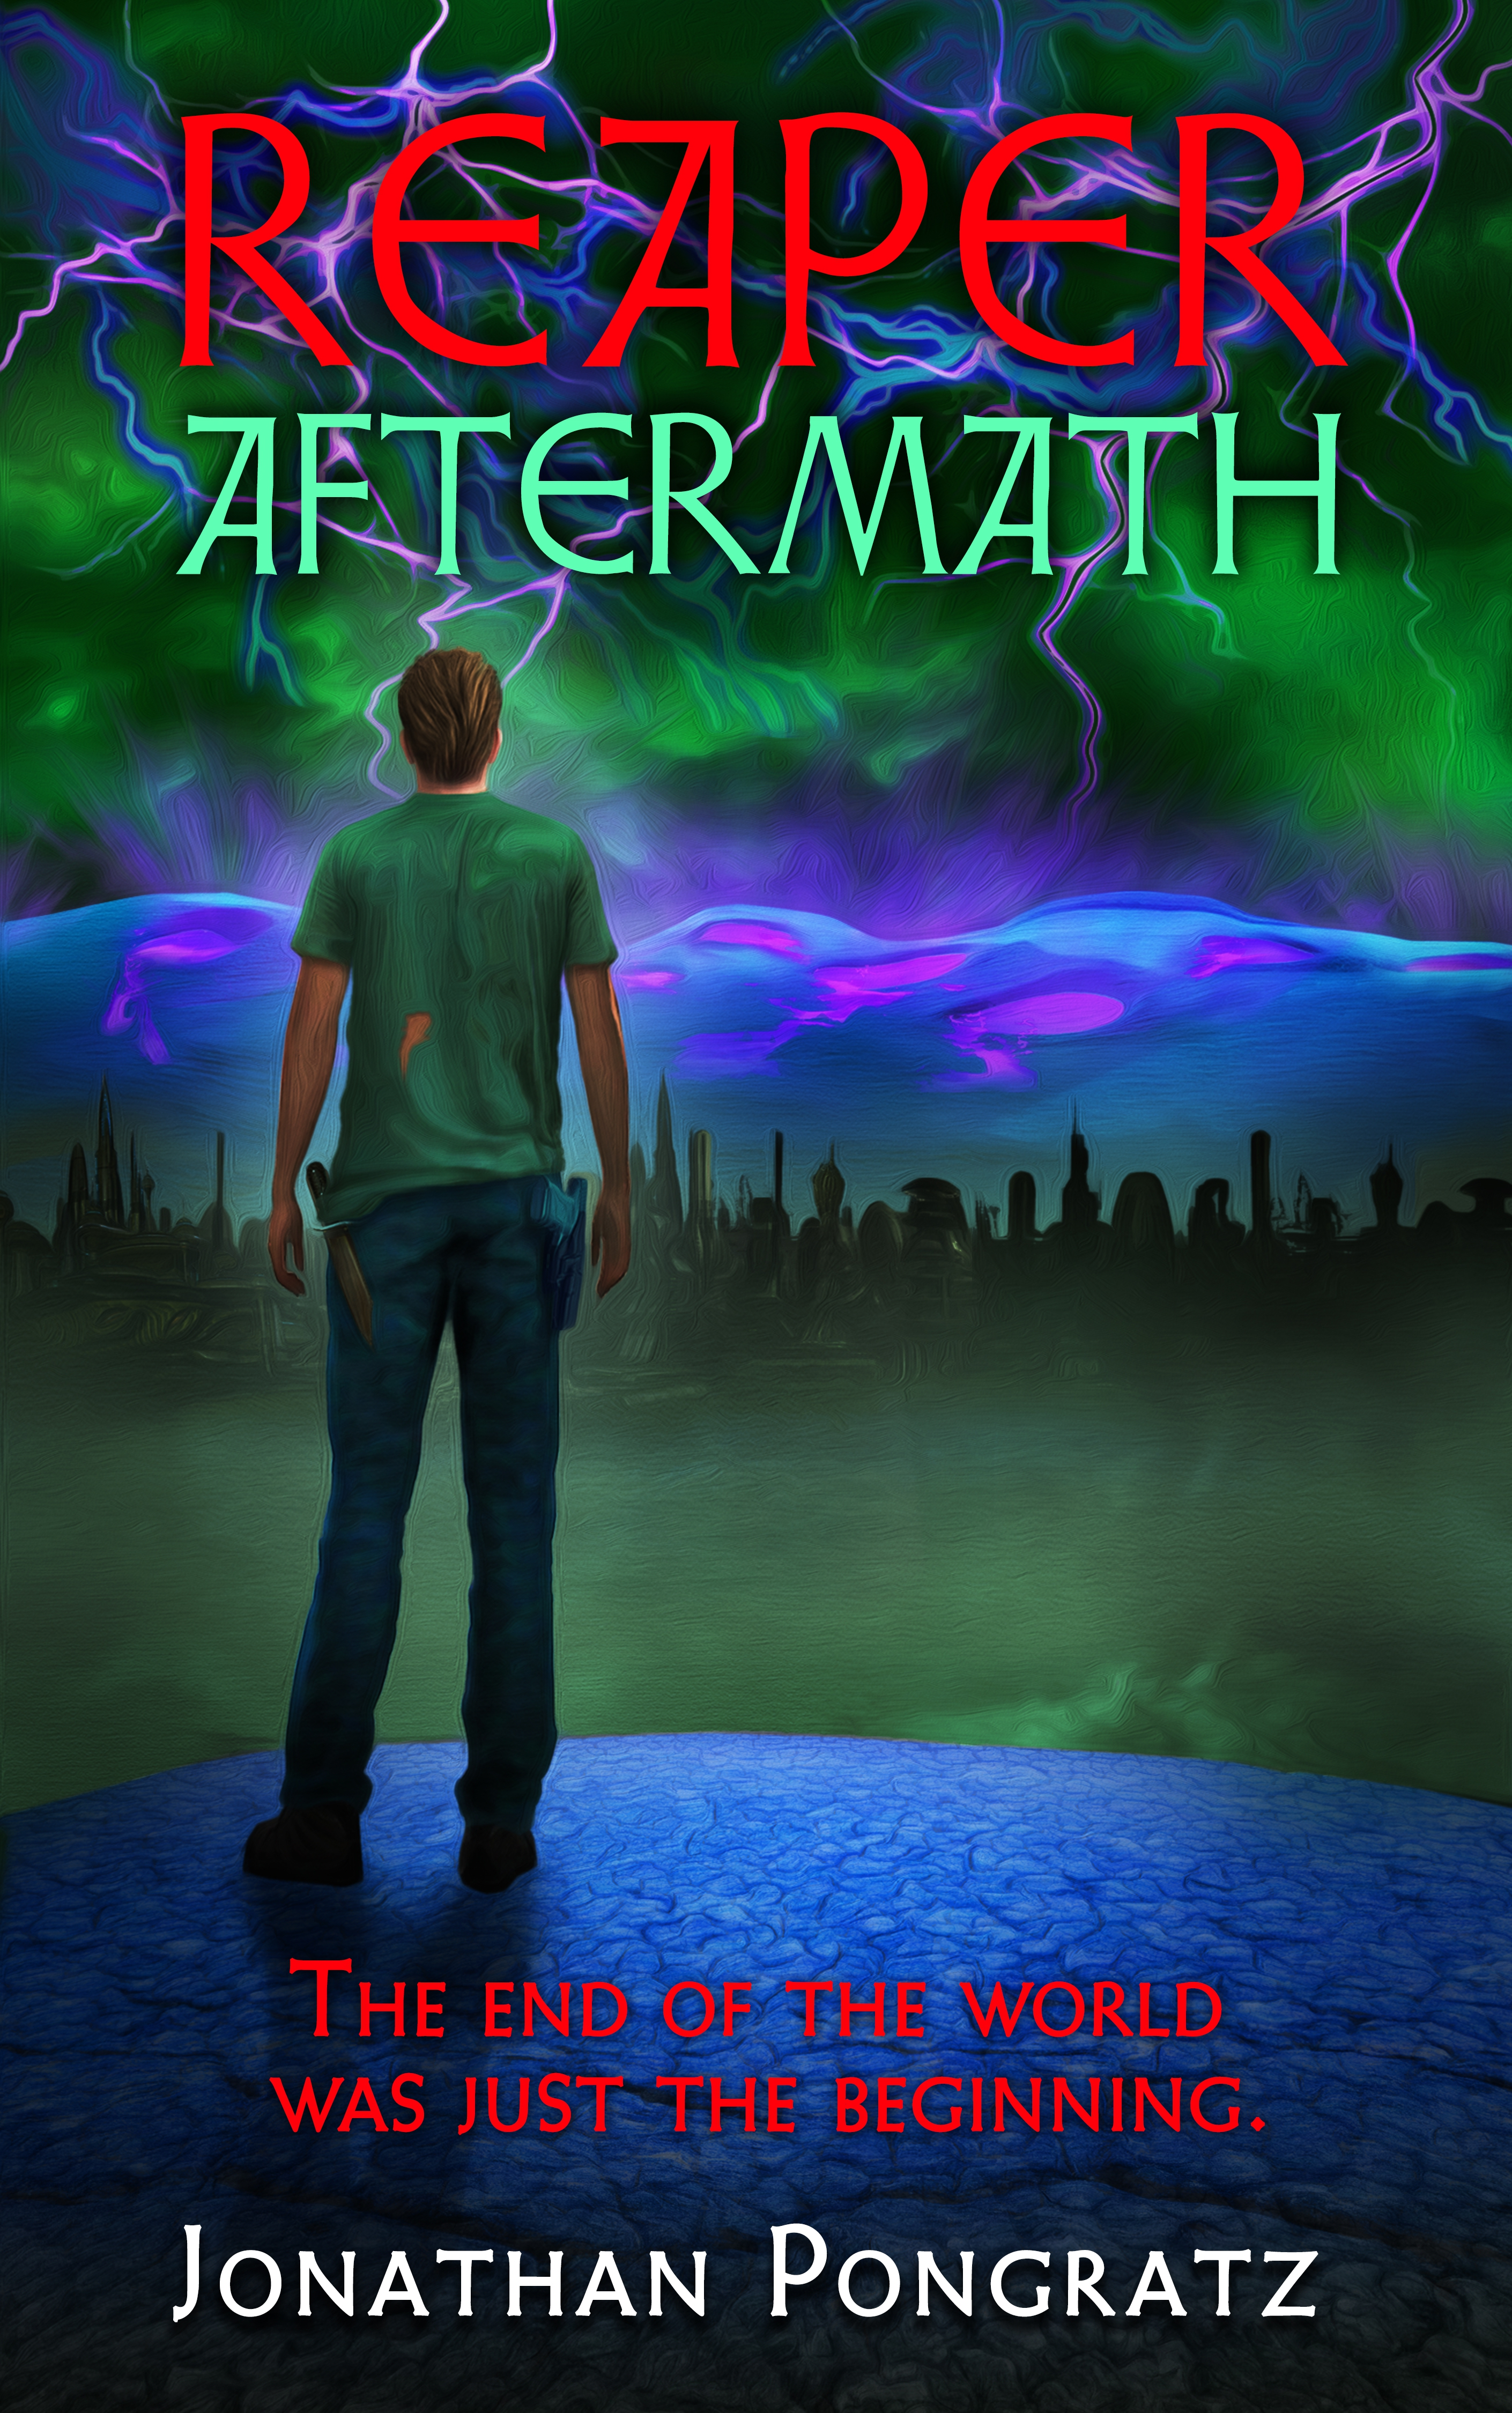 ReaperAftermathKindleCover